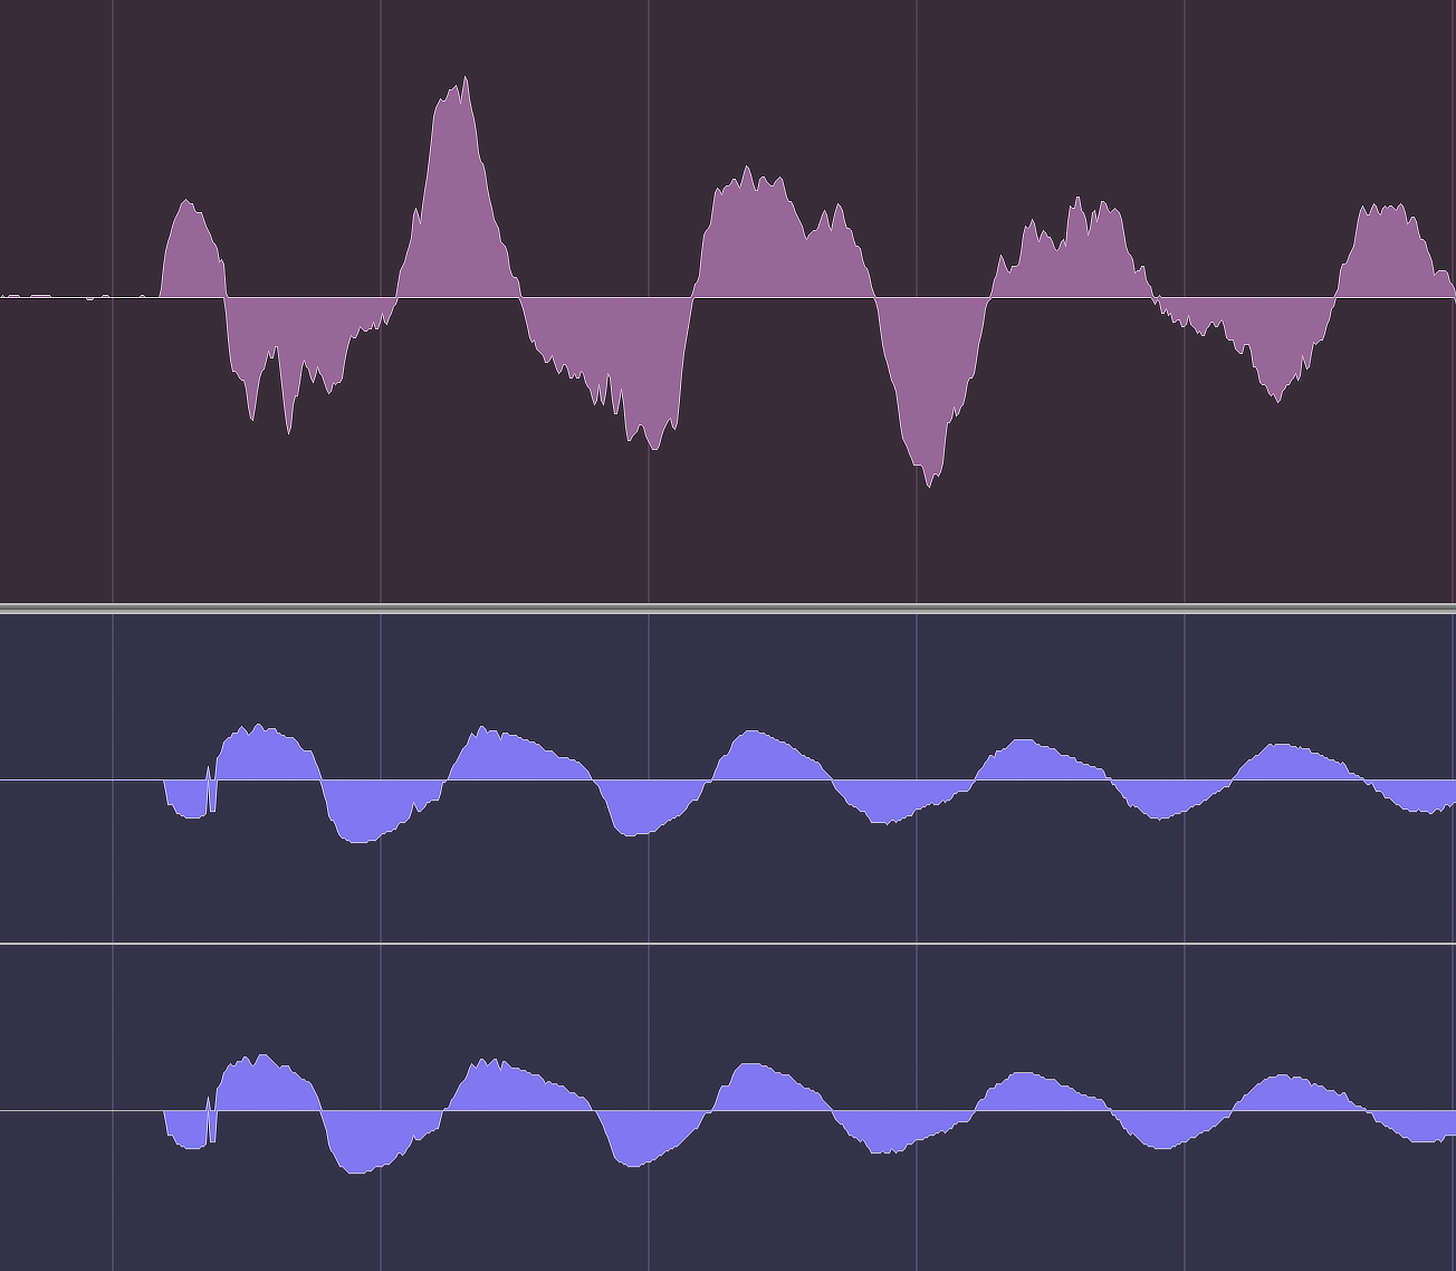 Before inverting the polarity of the layered snare. Note the discrepancies between the compressions and rarefactions of the waveforms.